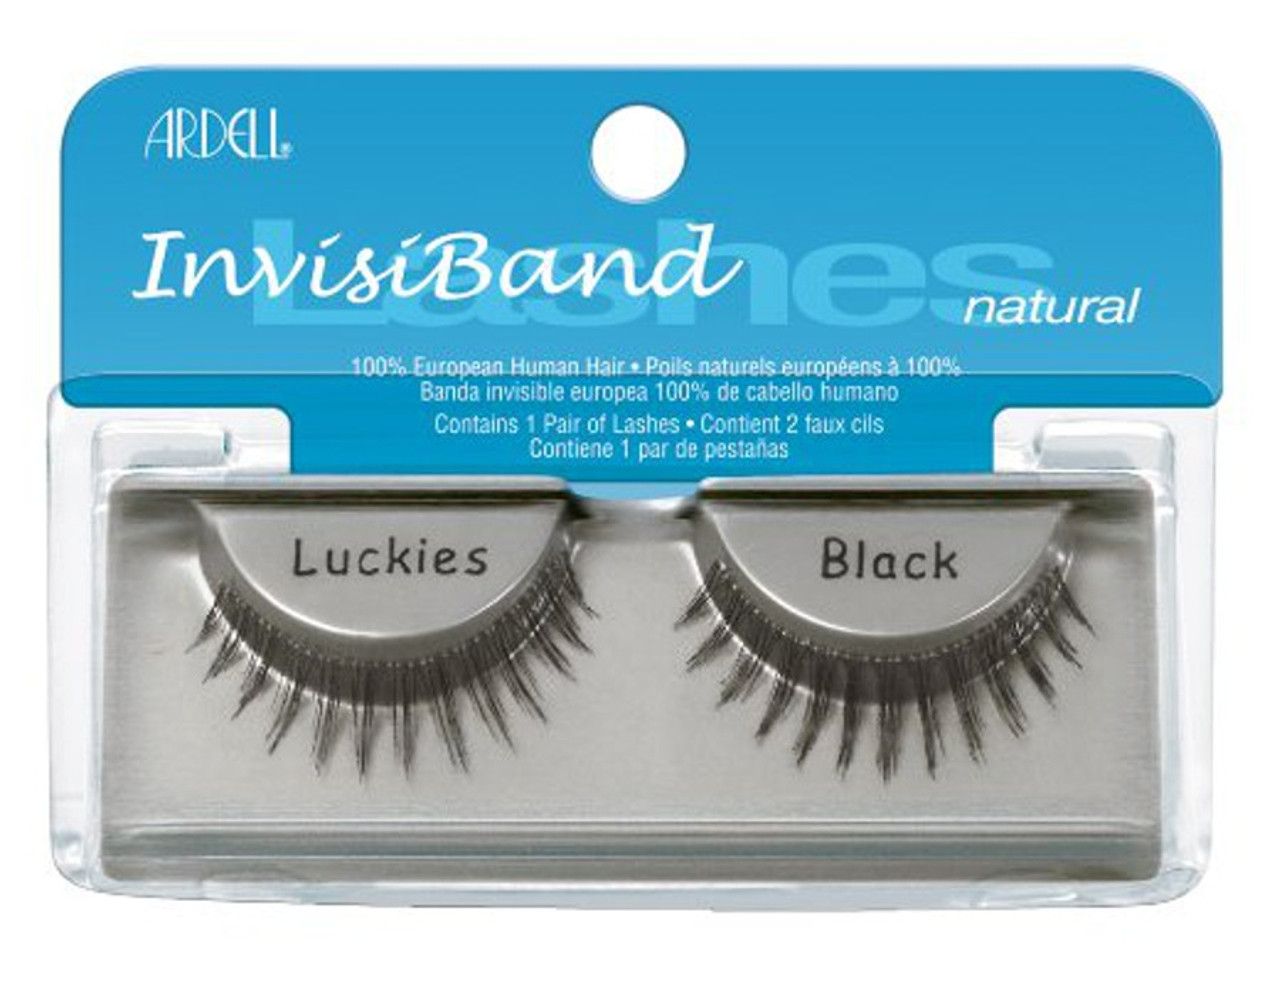 Ardell Natural (Invisiband) Lashes - Luckies Black